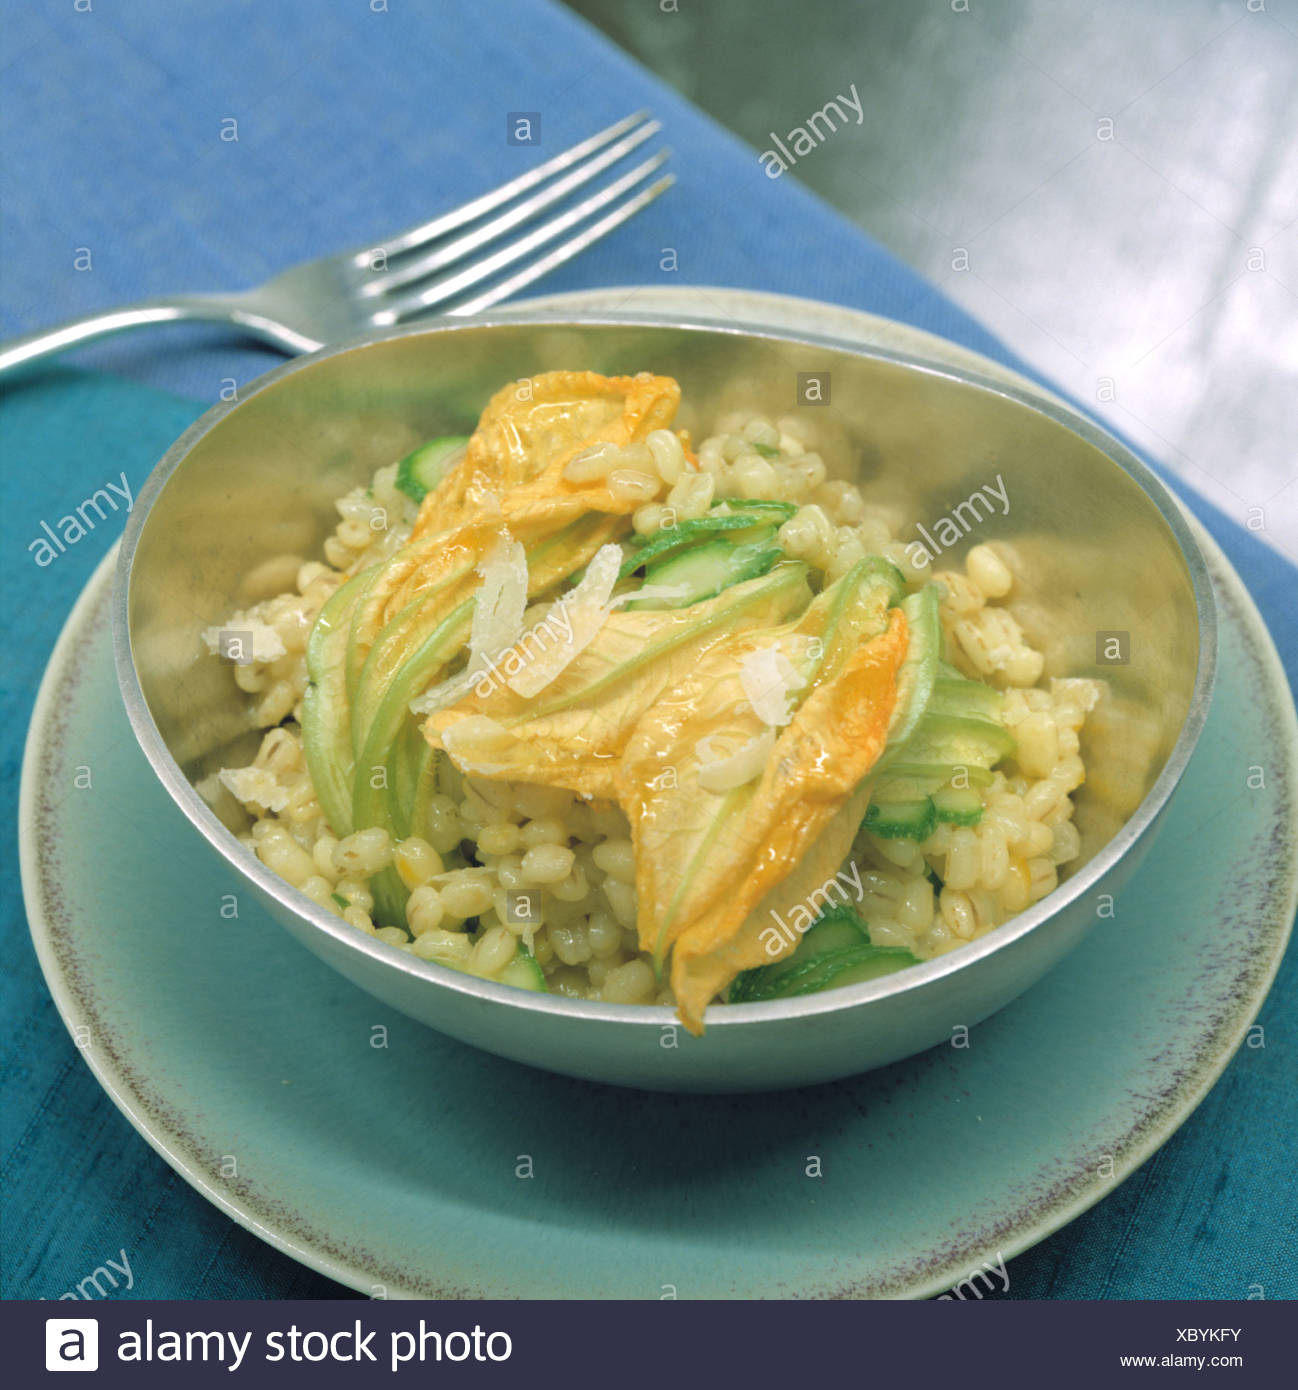 Groat - risotto with courgette blossoms - Stock Image